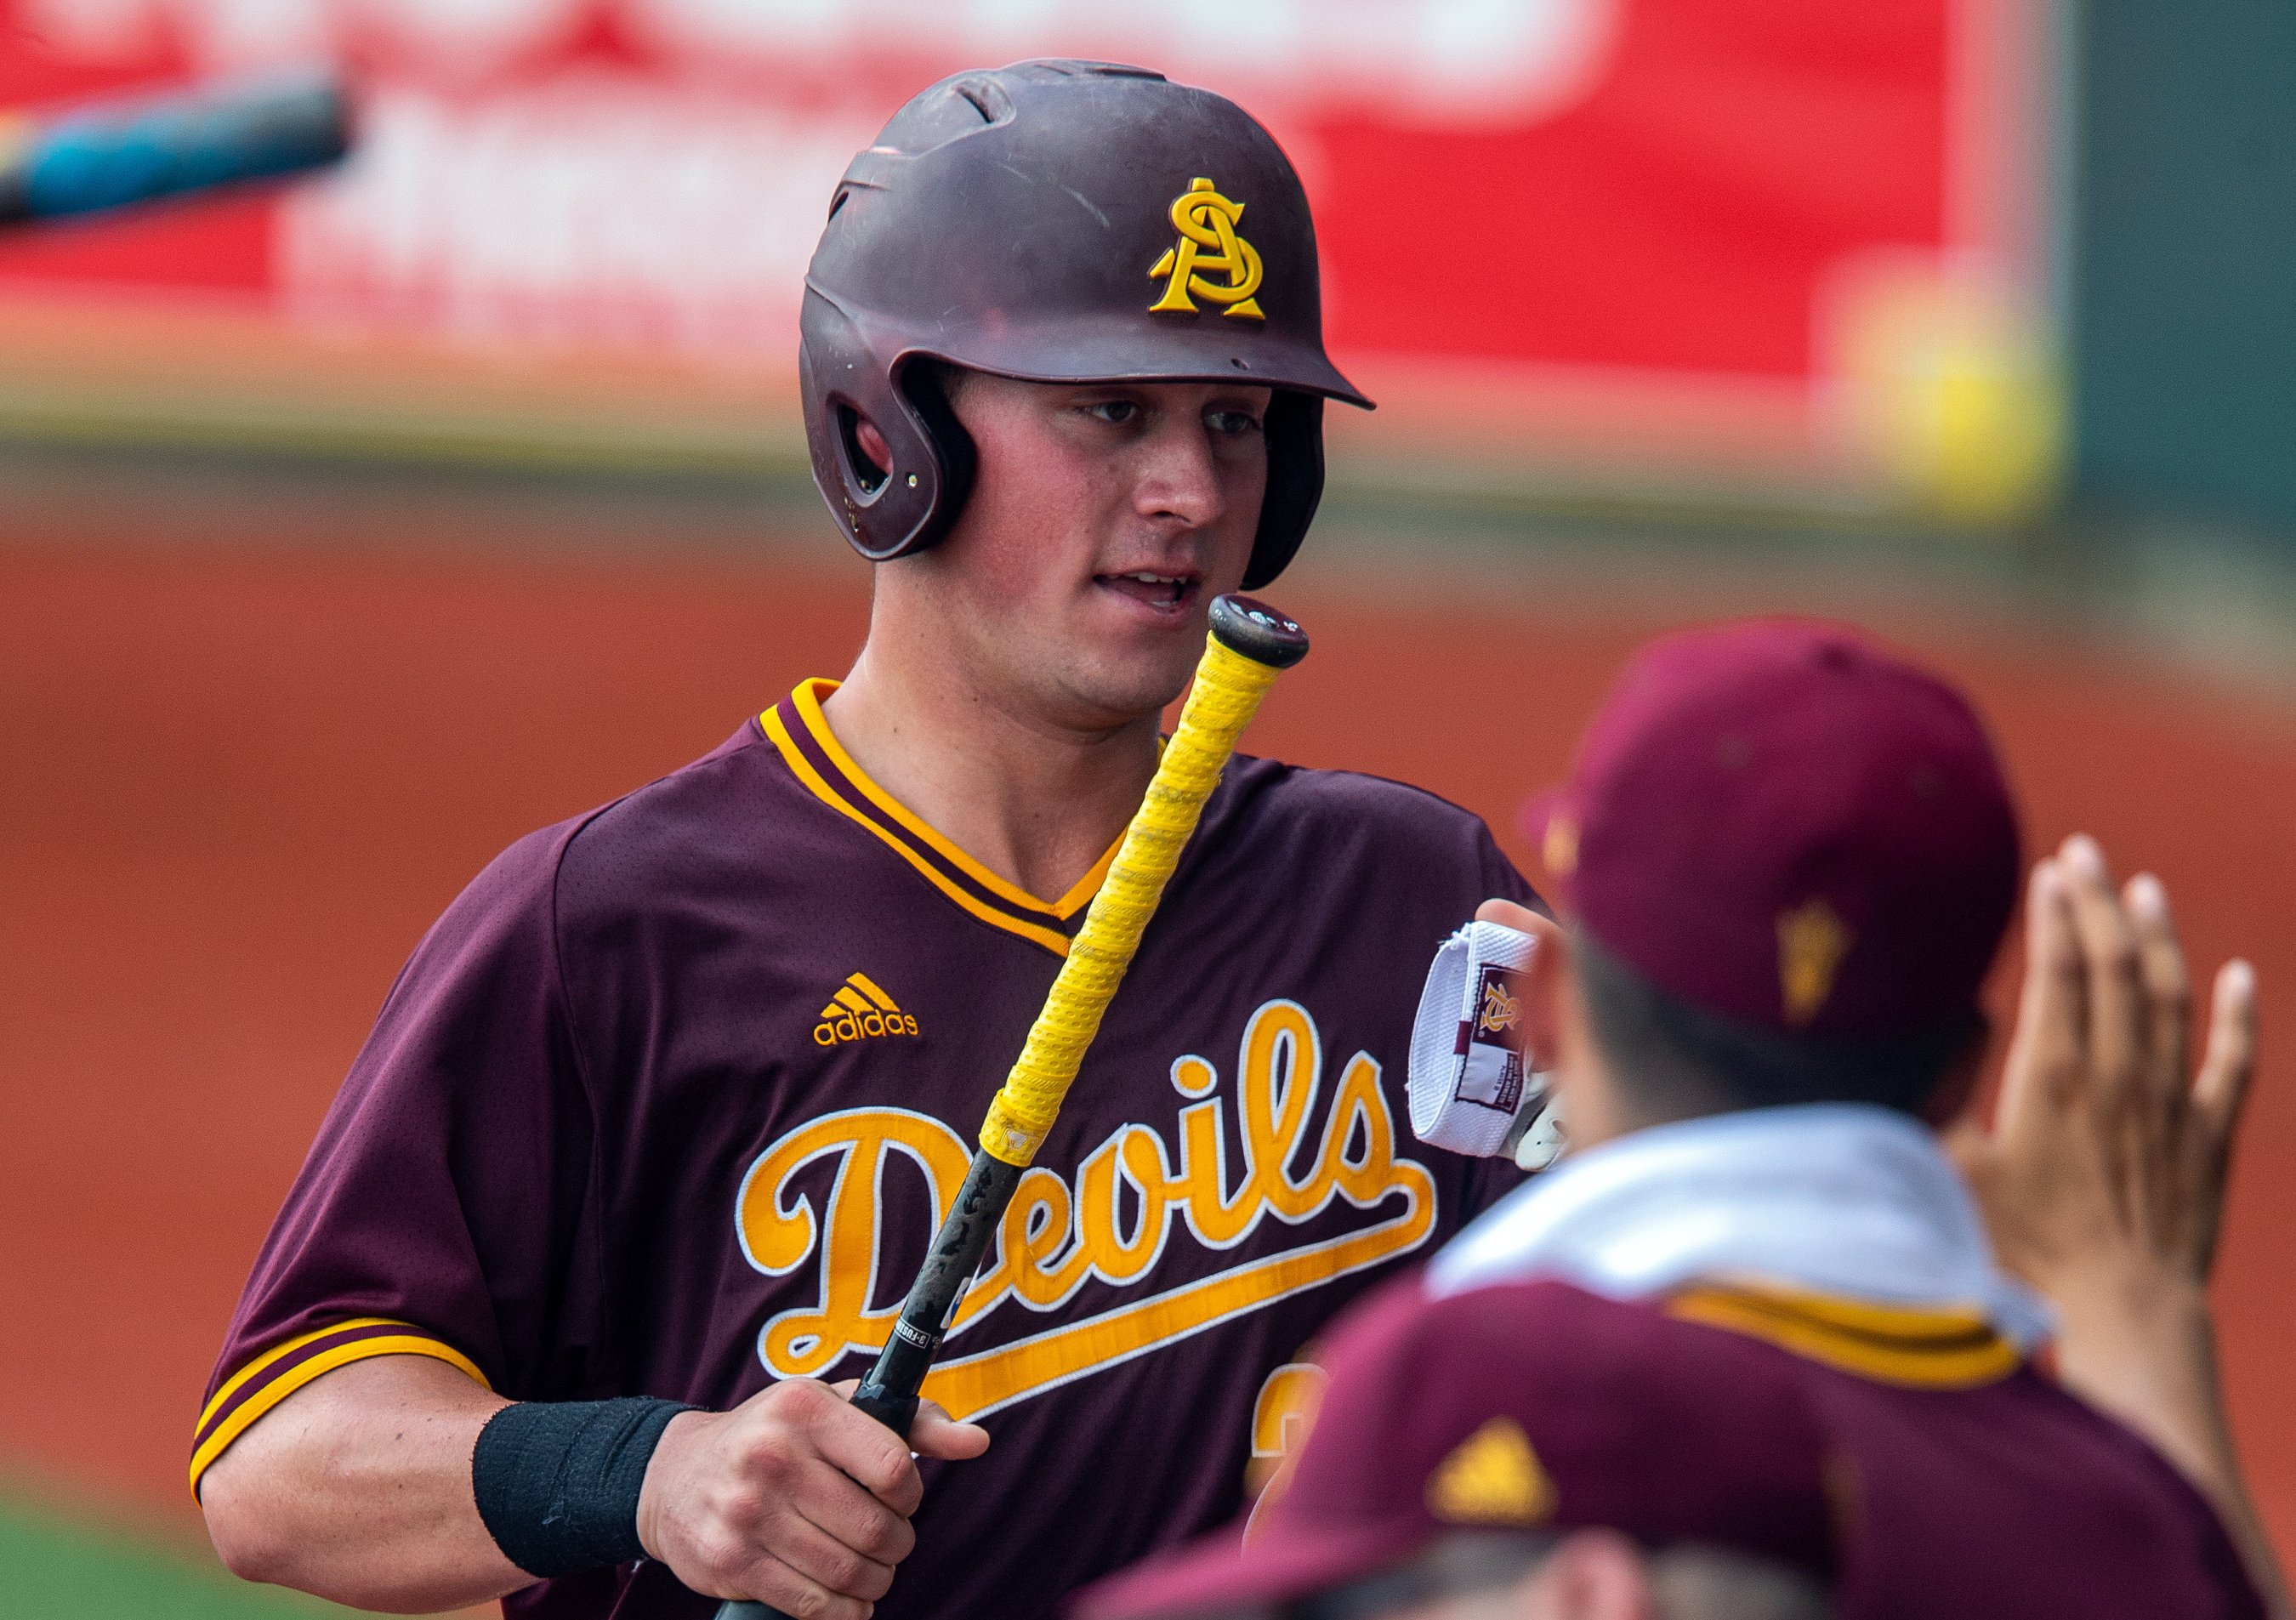 Baseball America Top 100 Prospects 2020.2020 Mlb Draft Preview Mock Draft Prospect Rankings Scouting